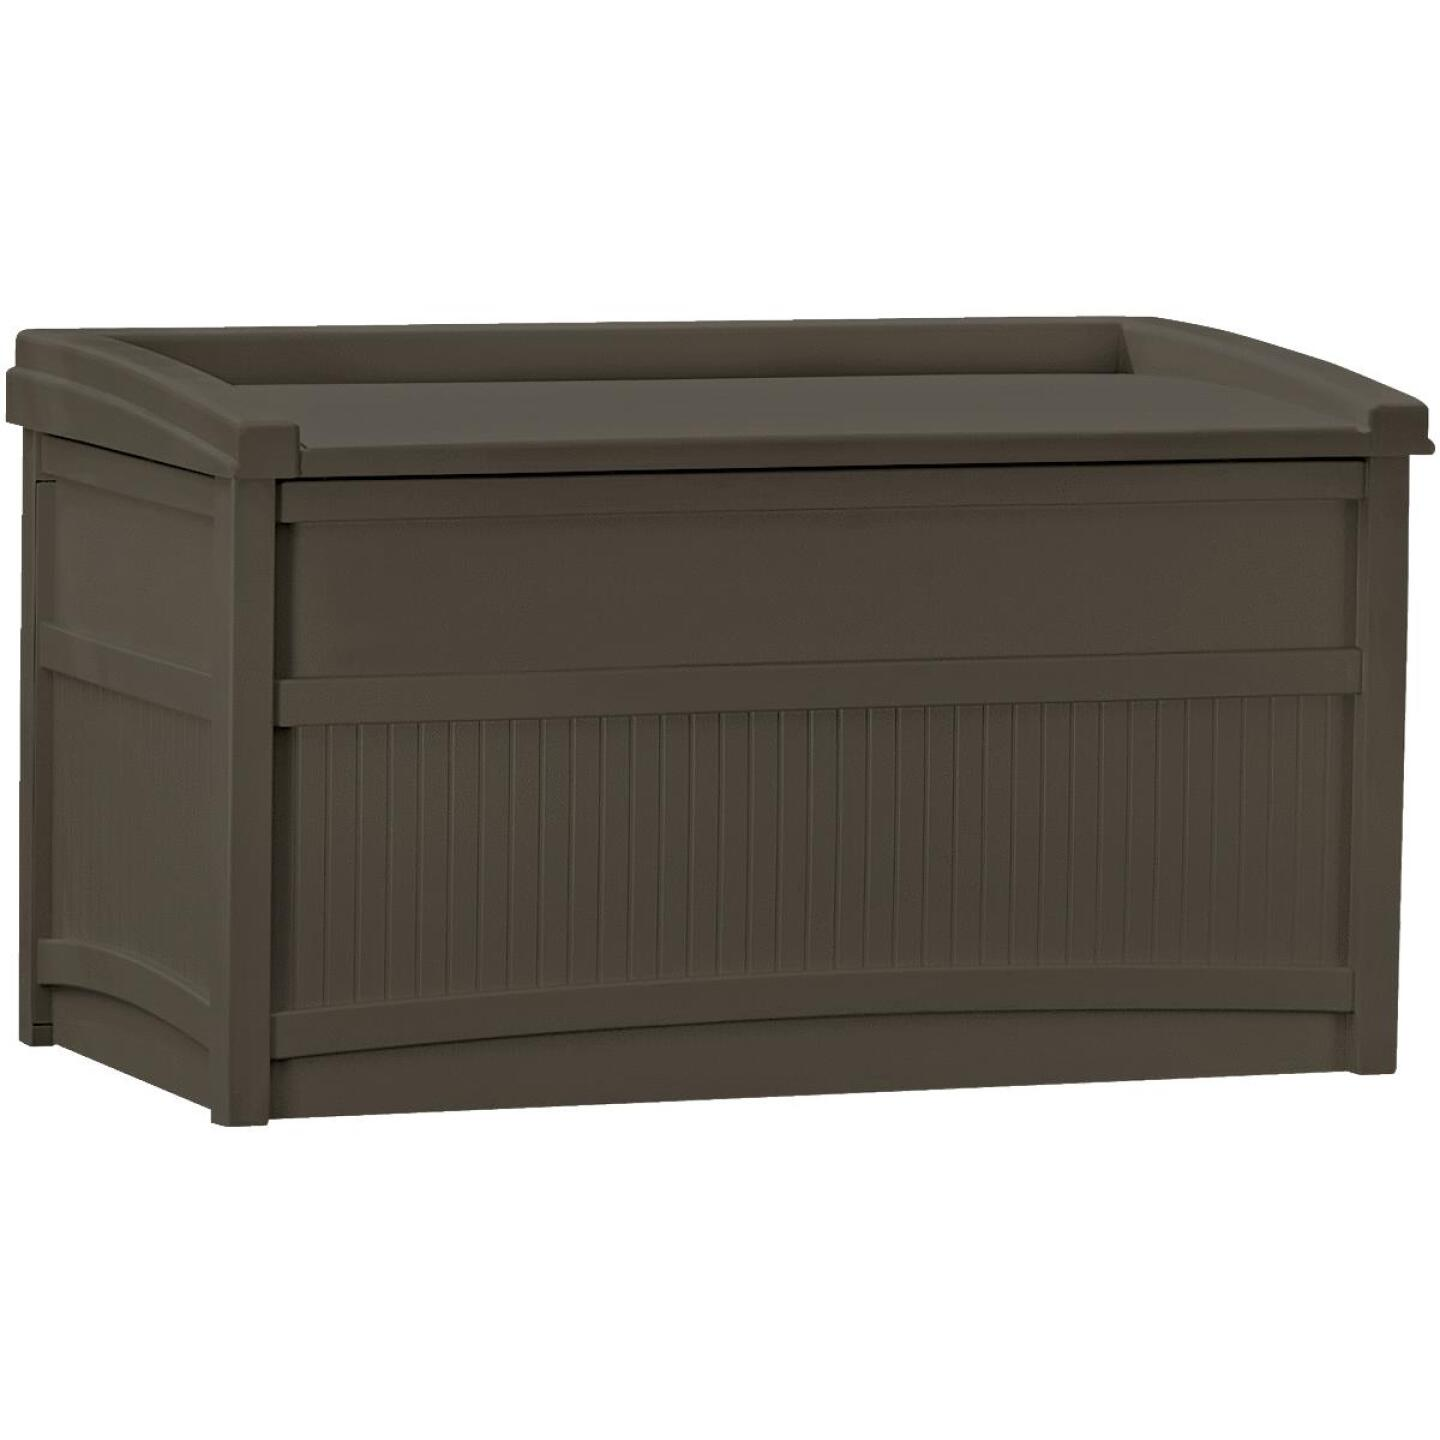 Suncast 50 Gal. Resin Java Deck Box with Seat Image 1